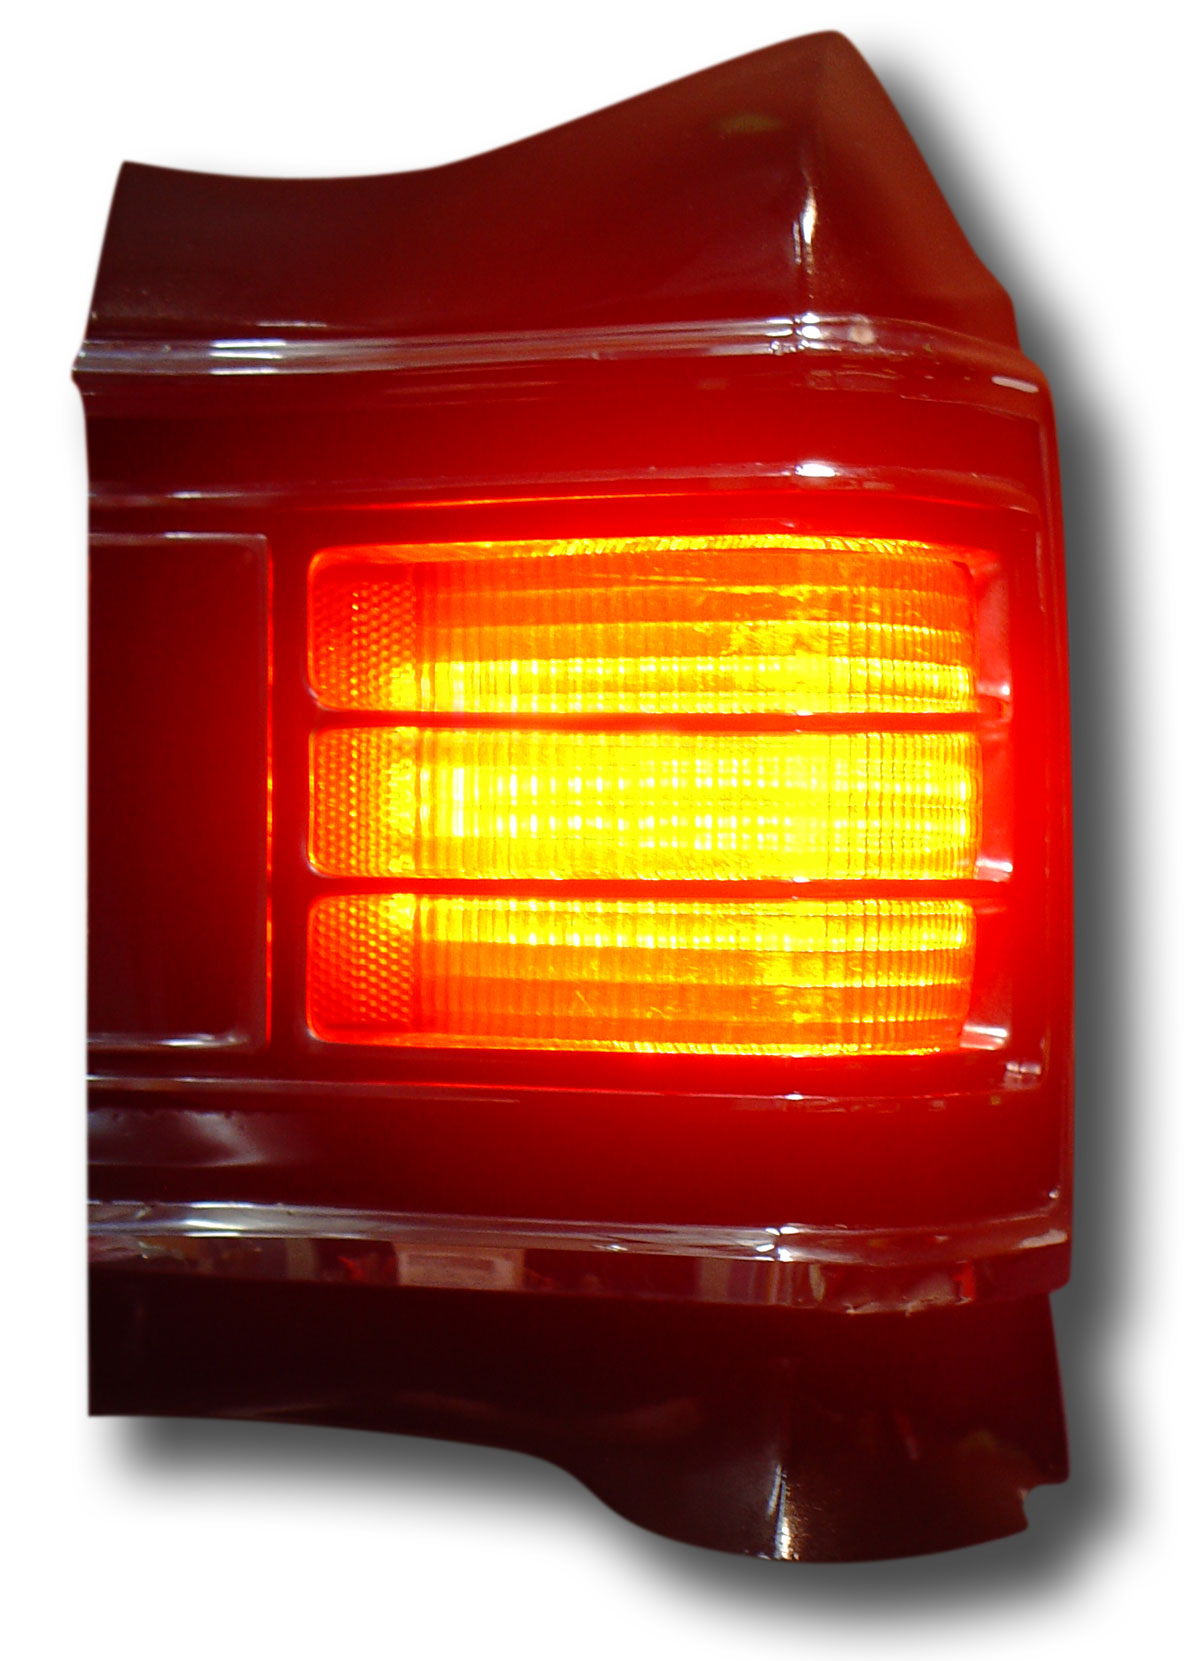 1967 Chevy Chevelle Digital Tail Lights.jpg